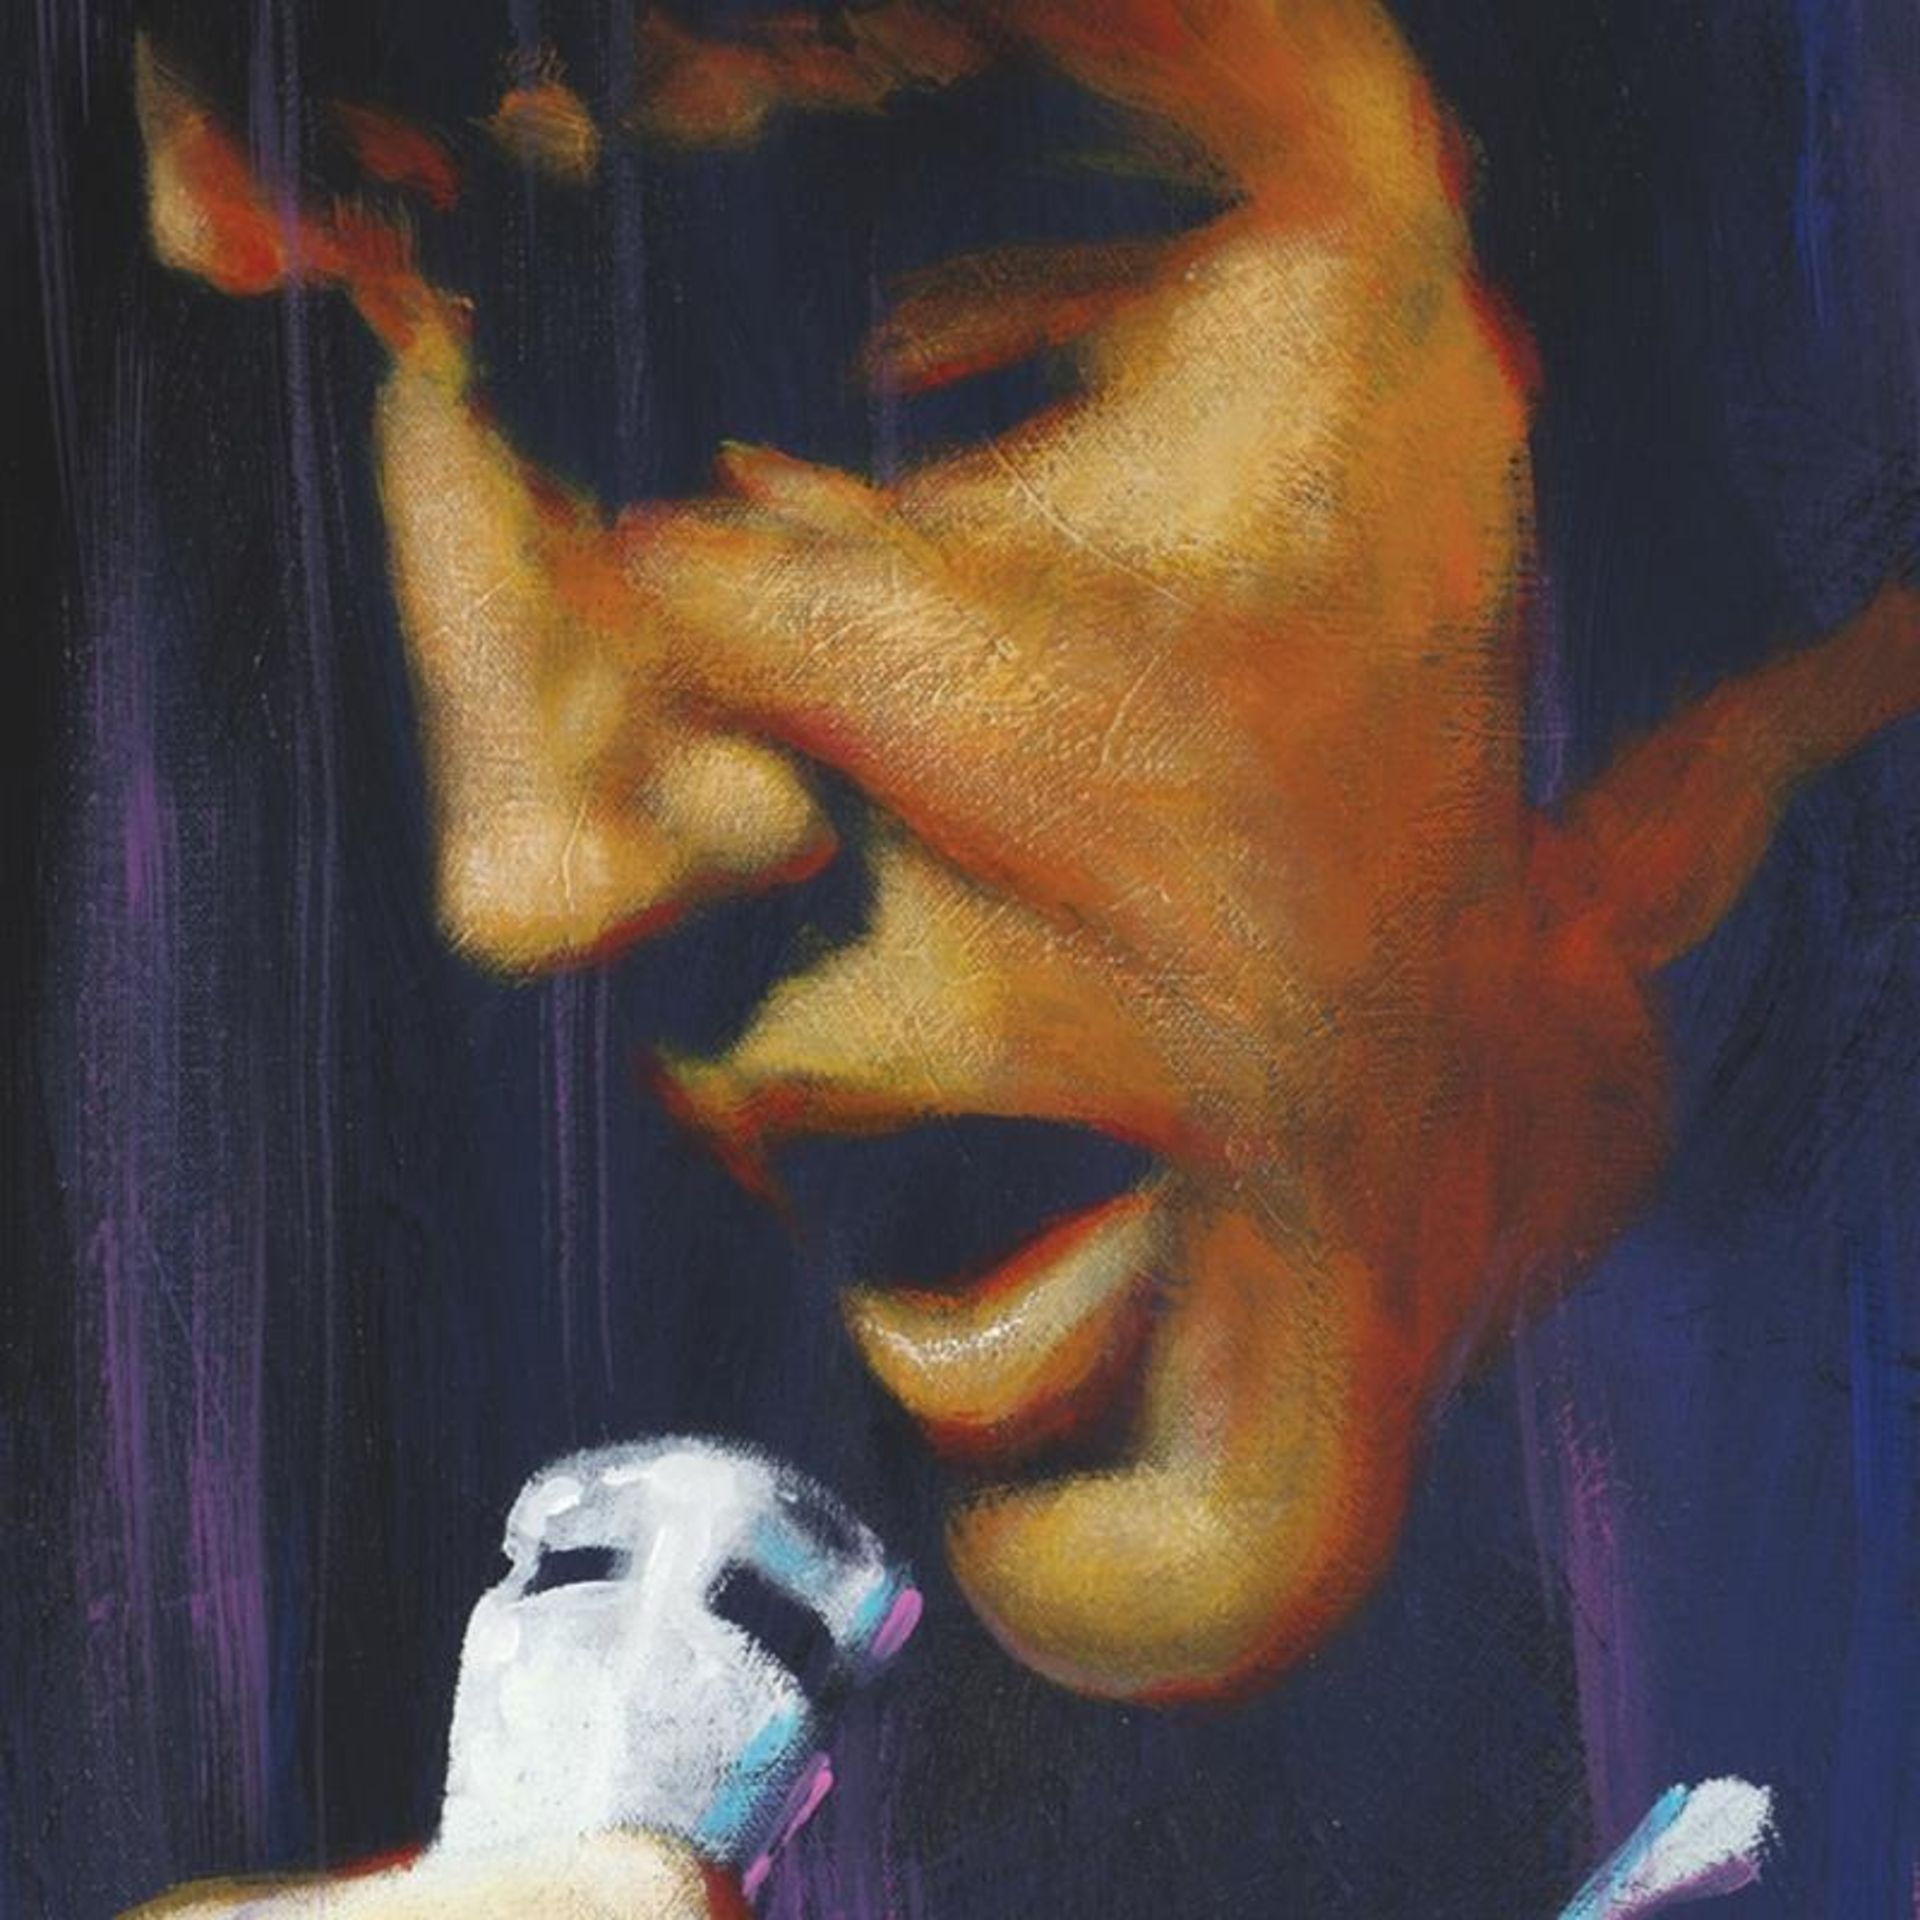 """""""I Dream"""" Limited Edition Giclee on Canvas by Stephen Fishwick, Numbered and Sig - Image 2 of 3"""